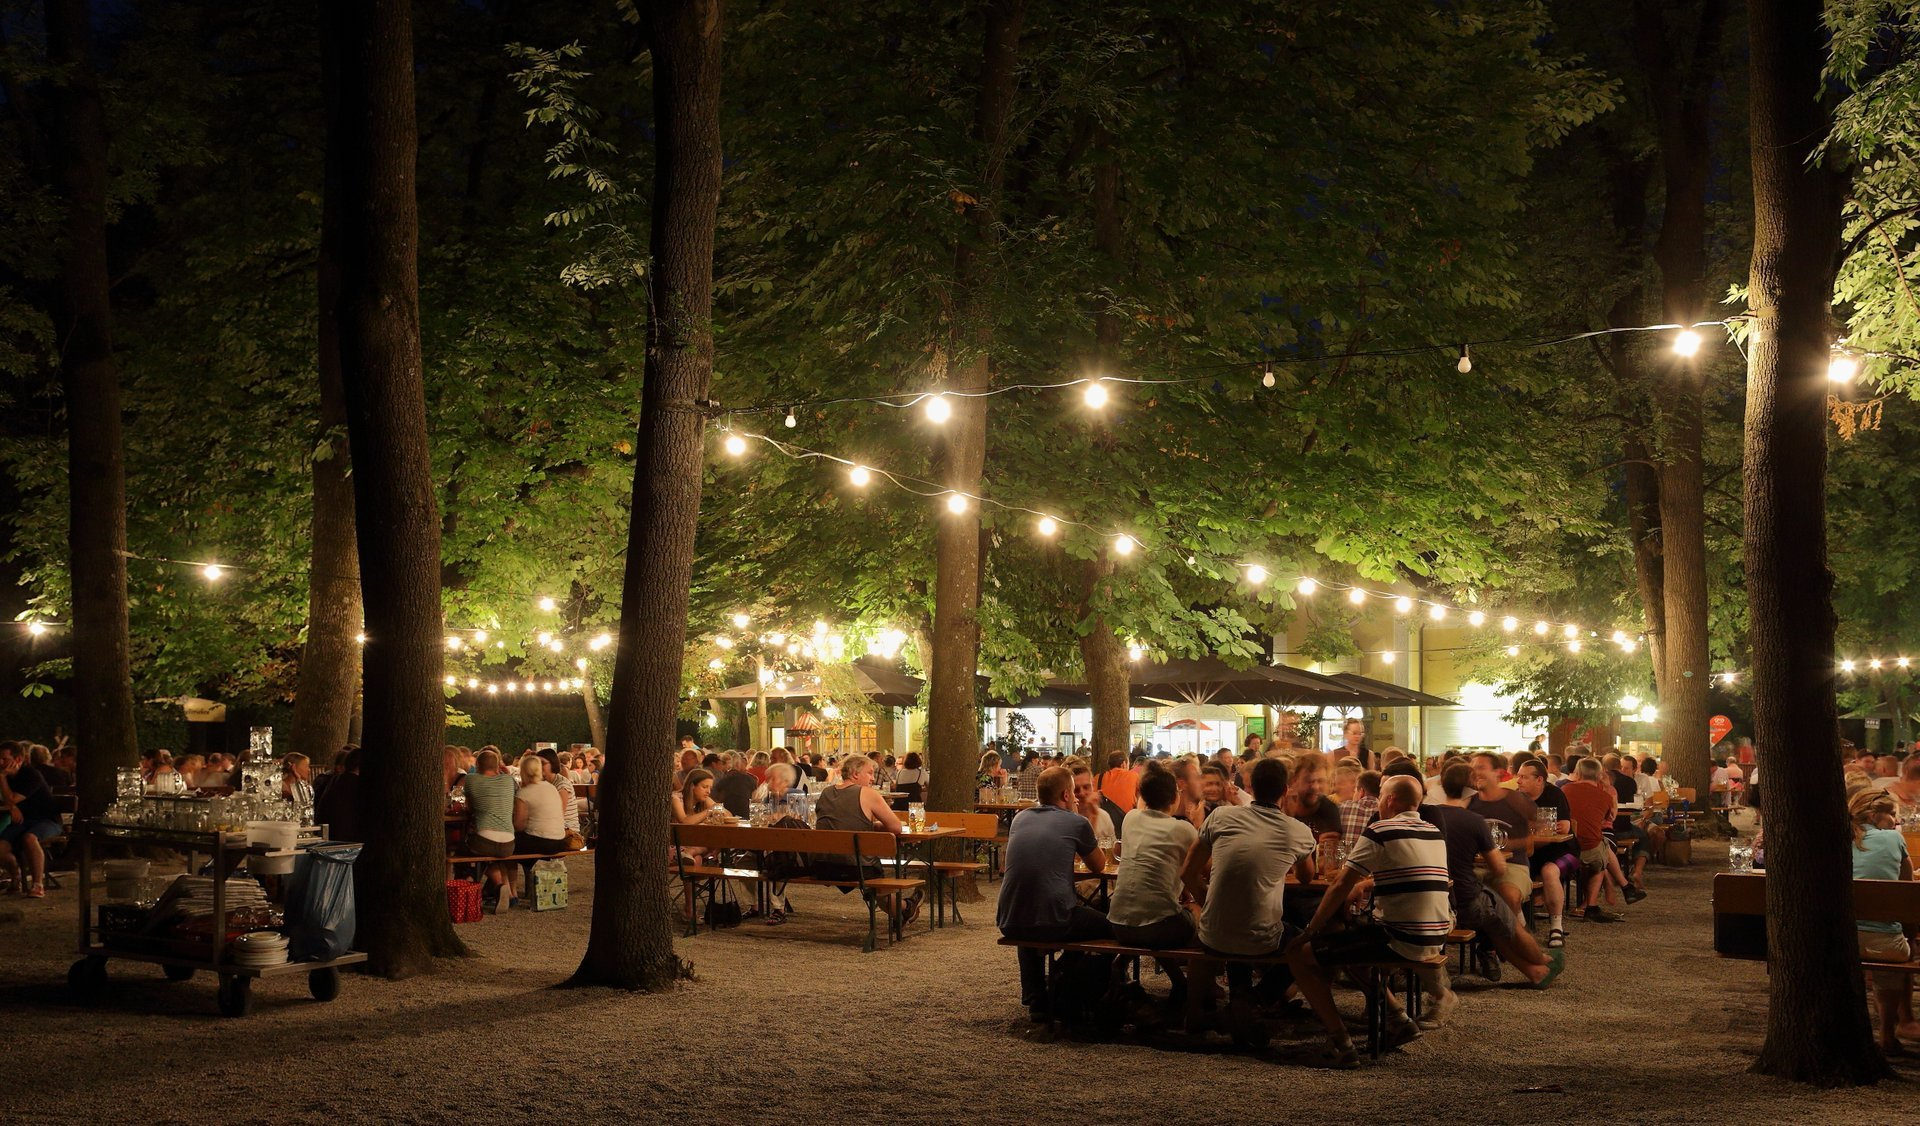 Beer Gardens in Munich 2020 - Best Time